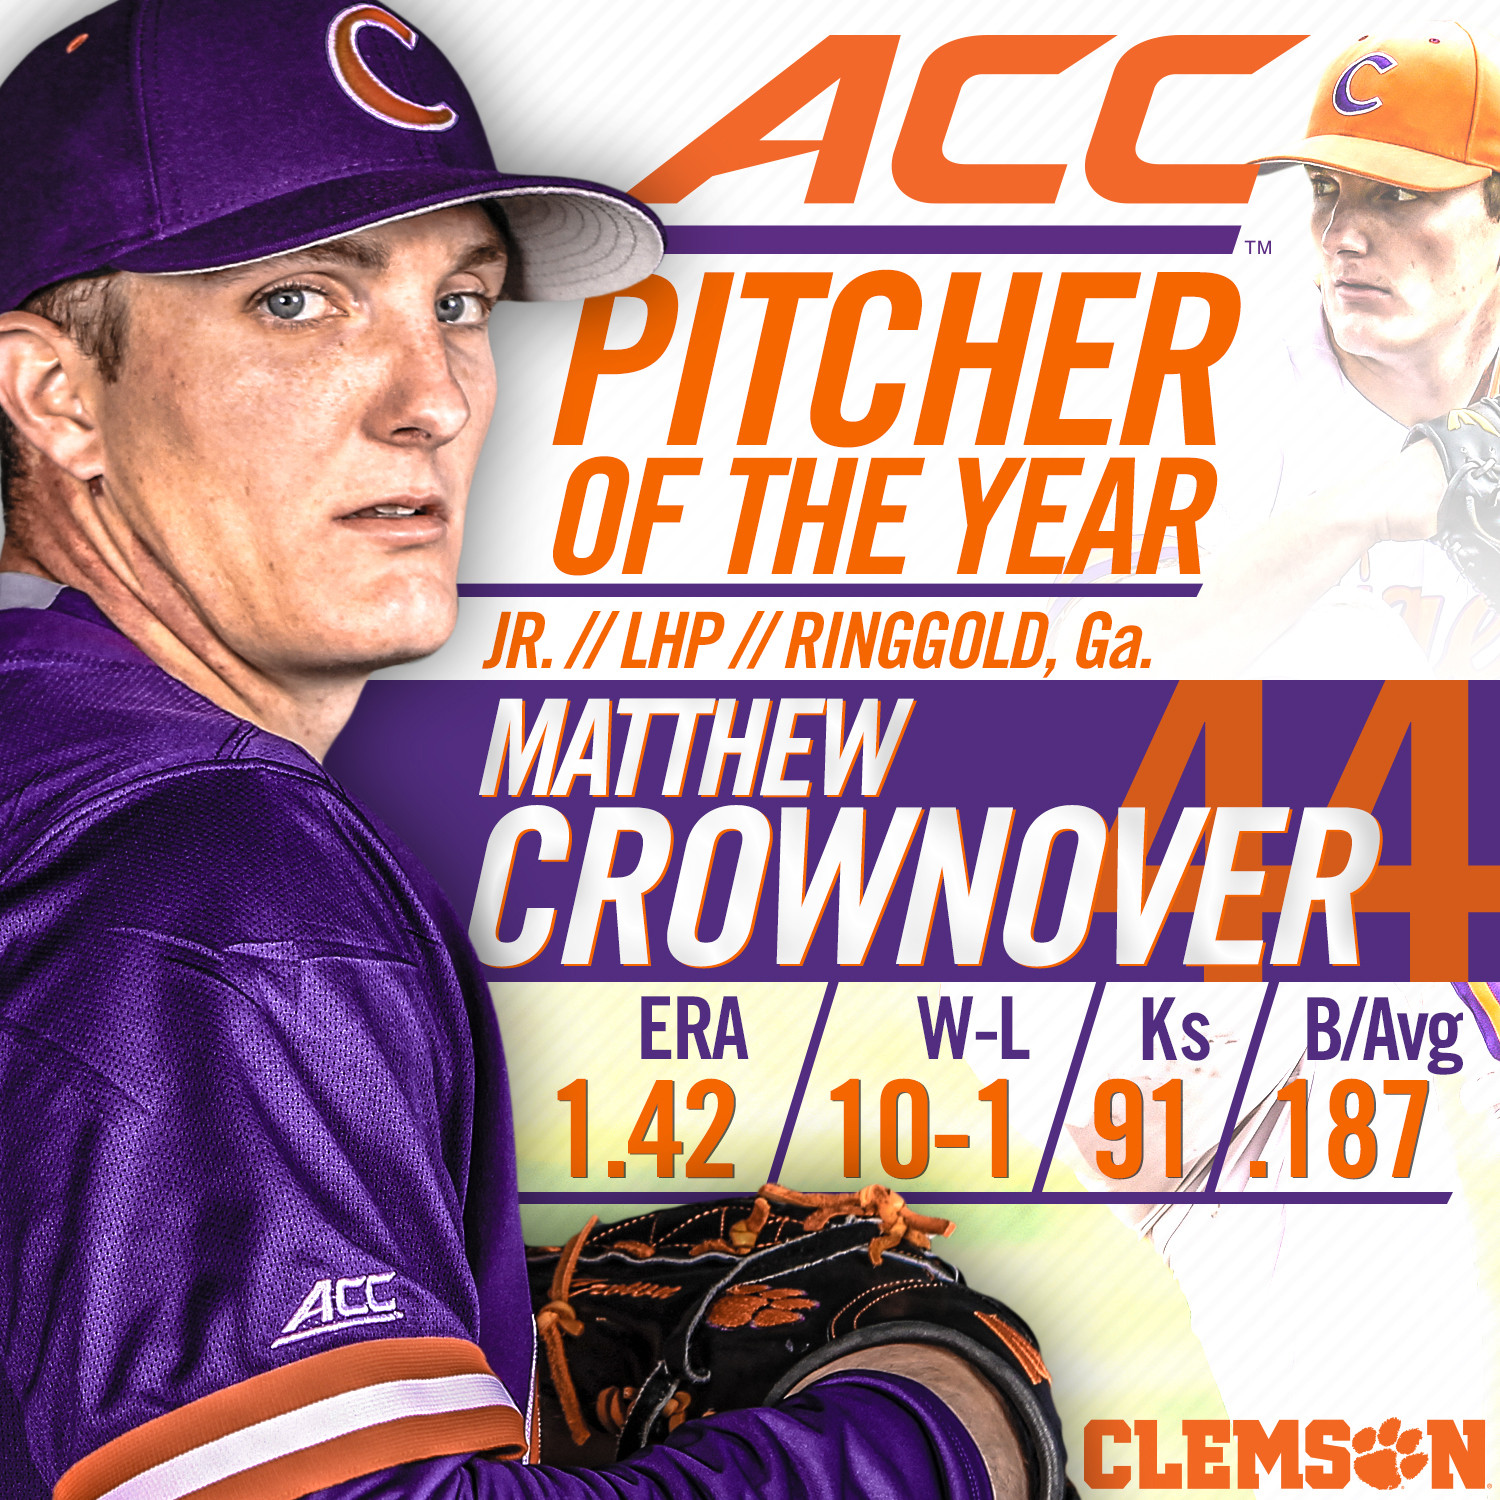 Crownover ACC's Top Pitcher